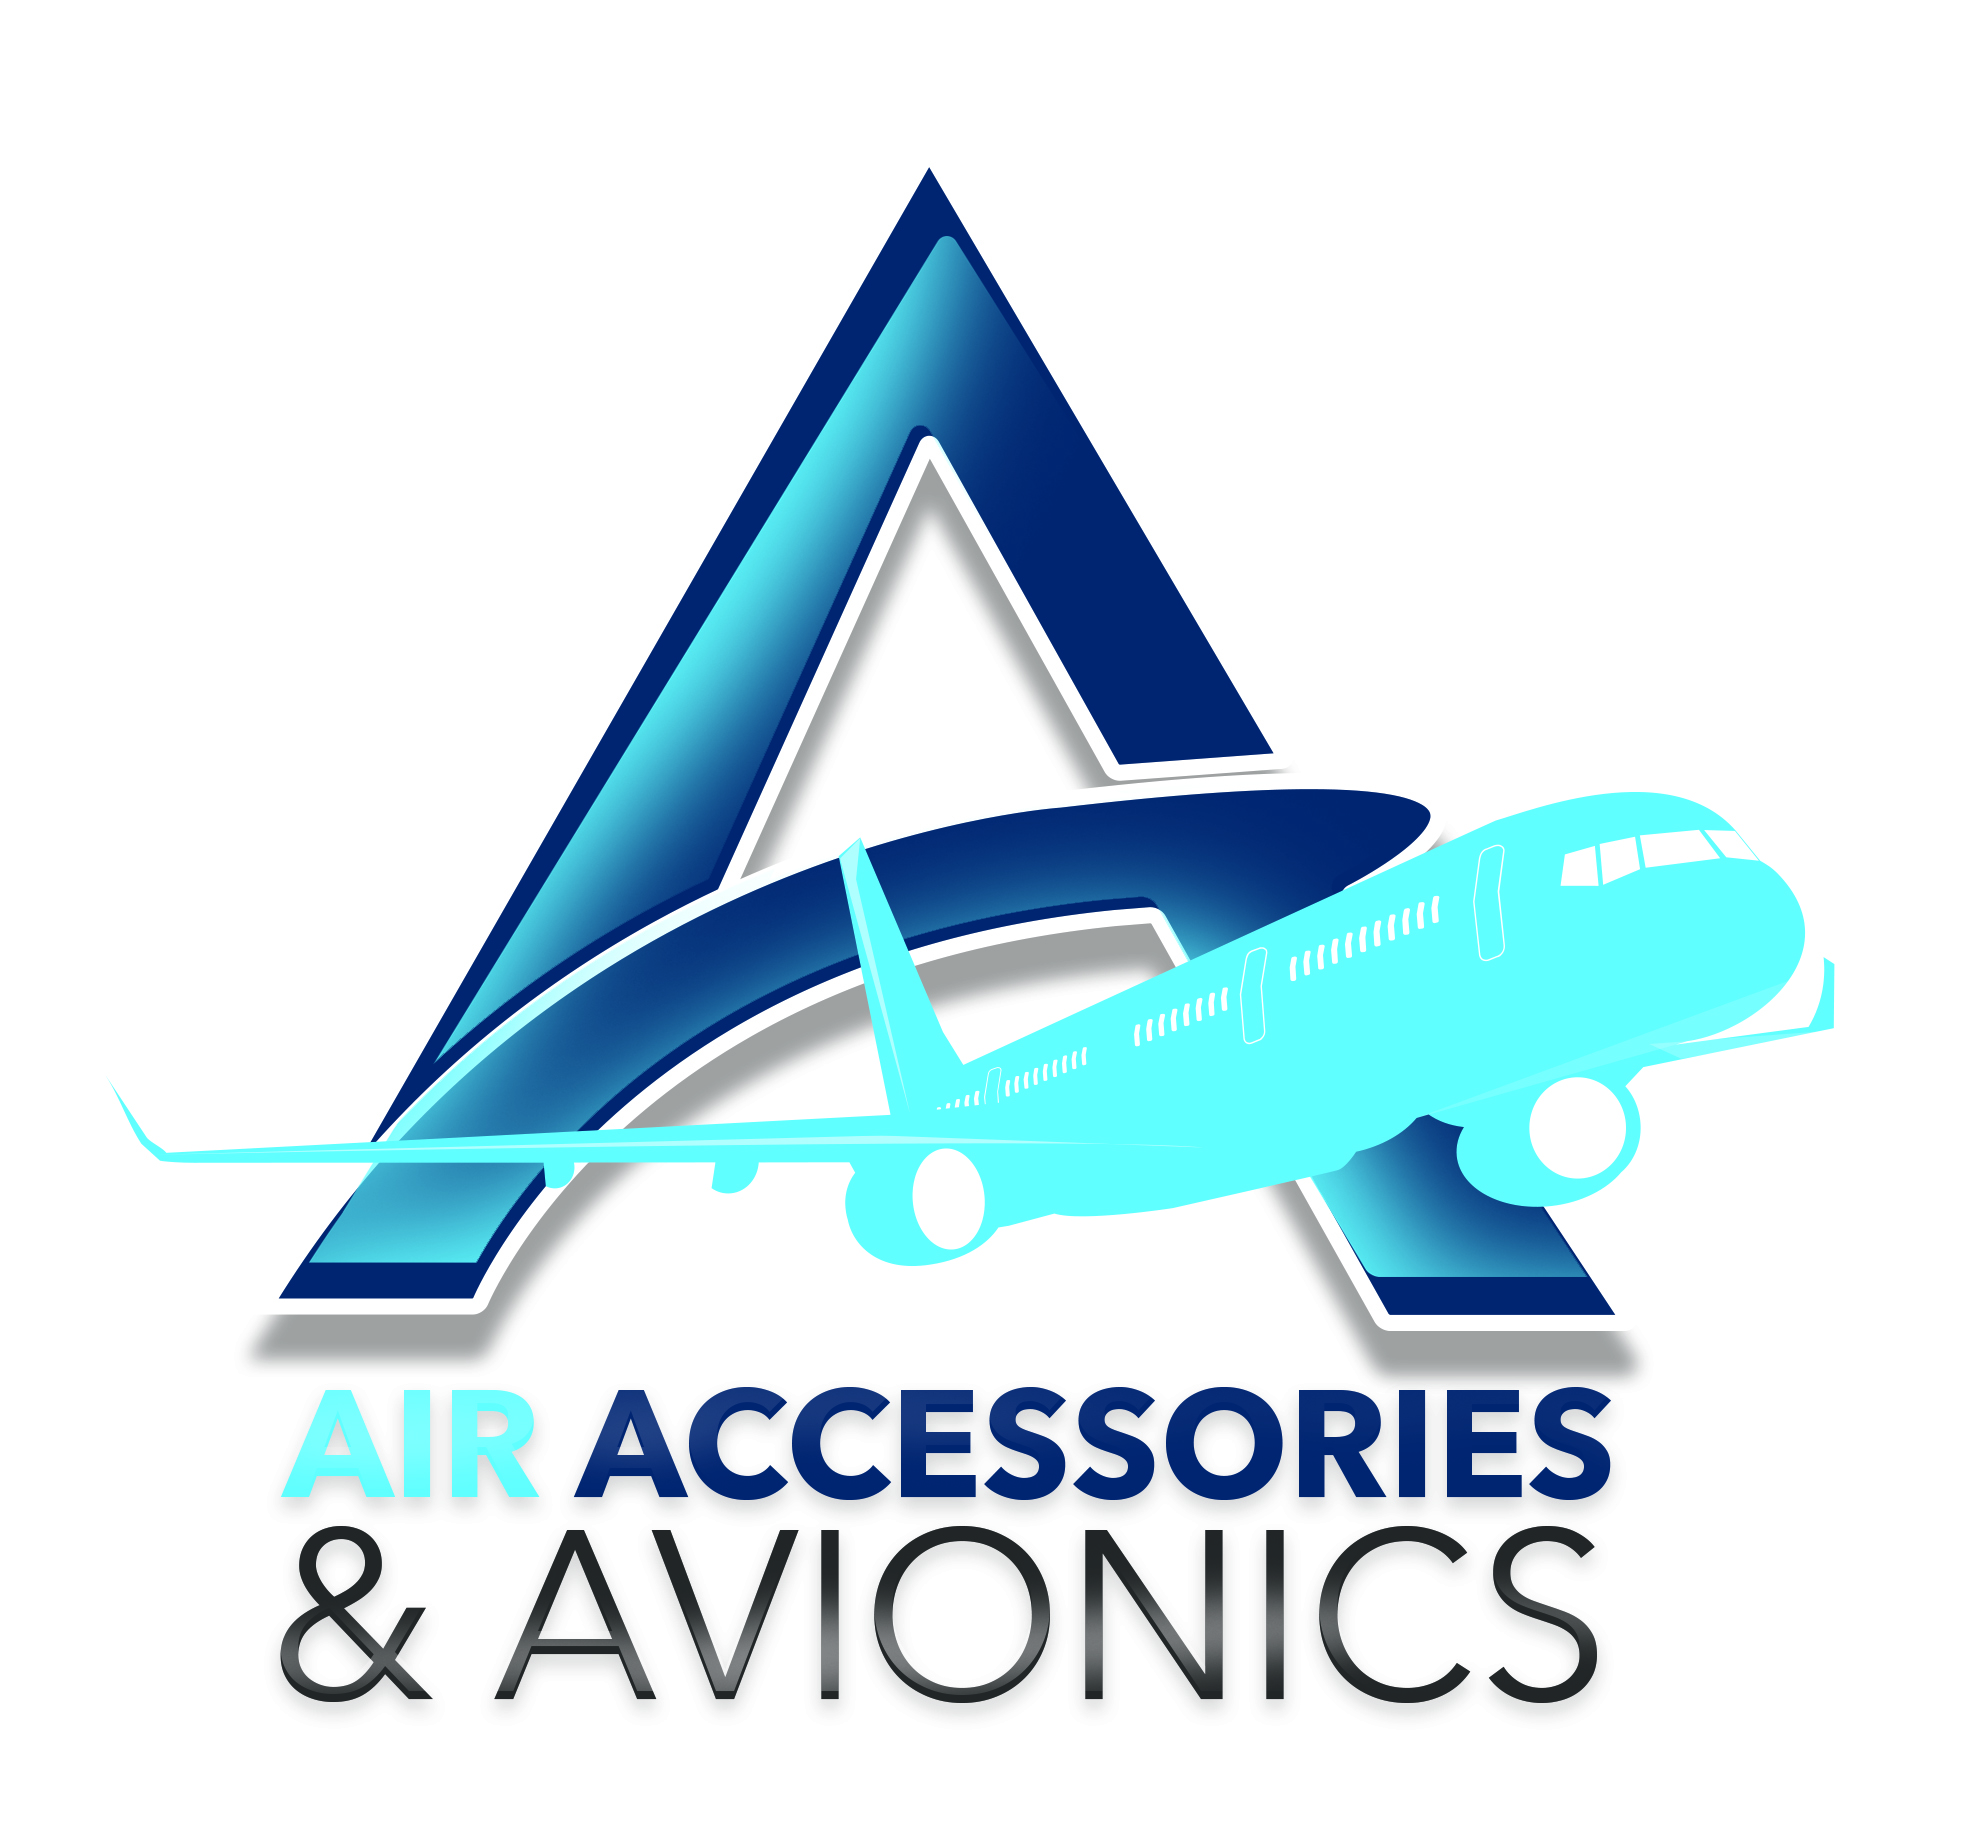 Air Accessories and Avionics